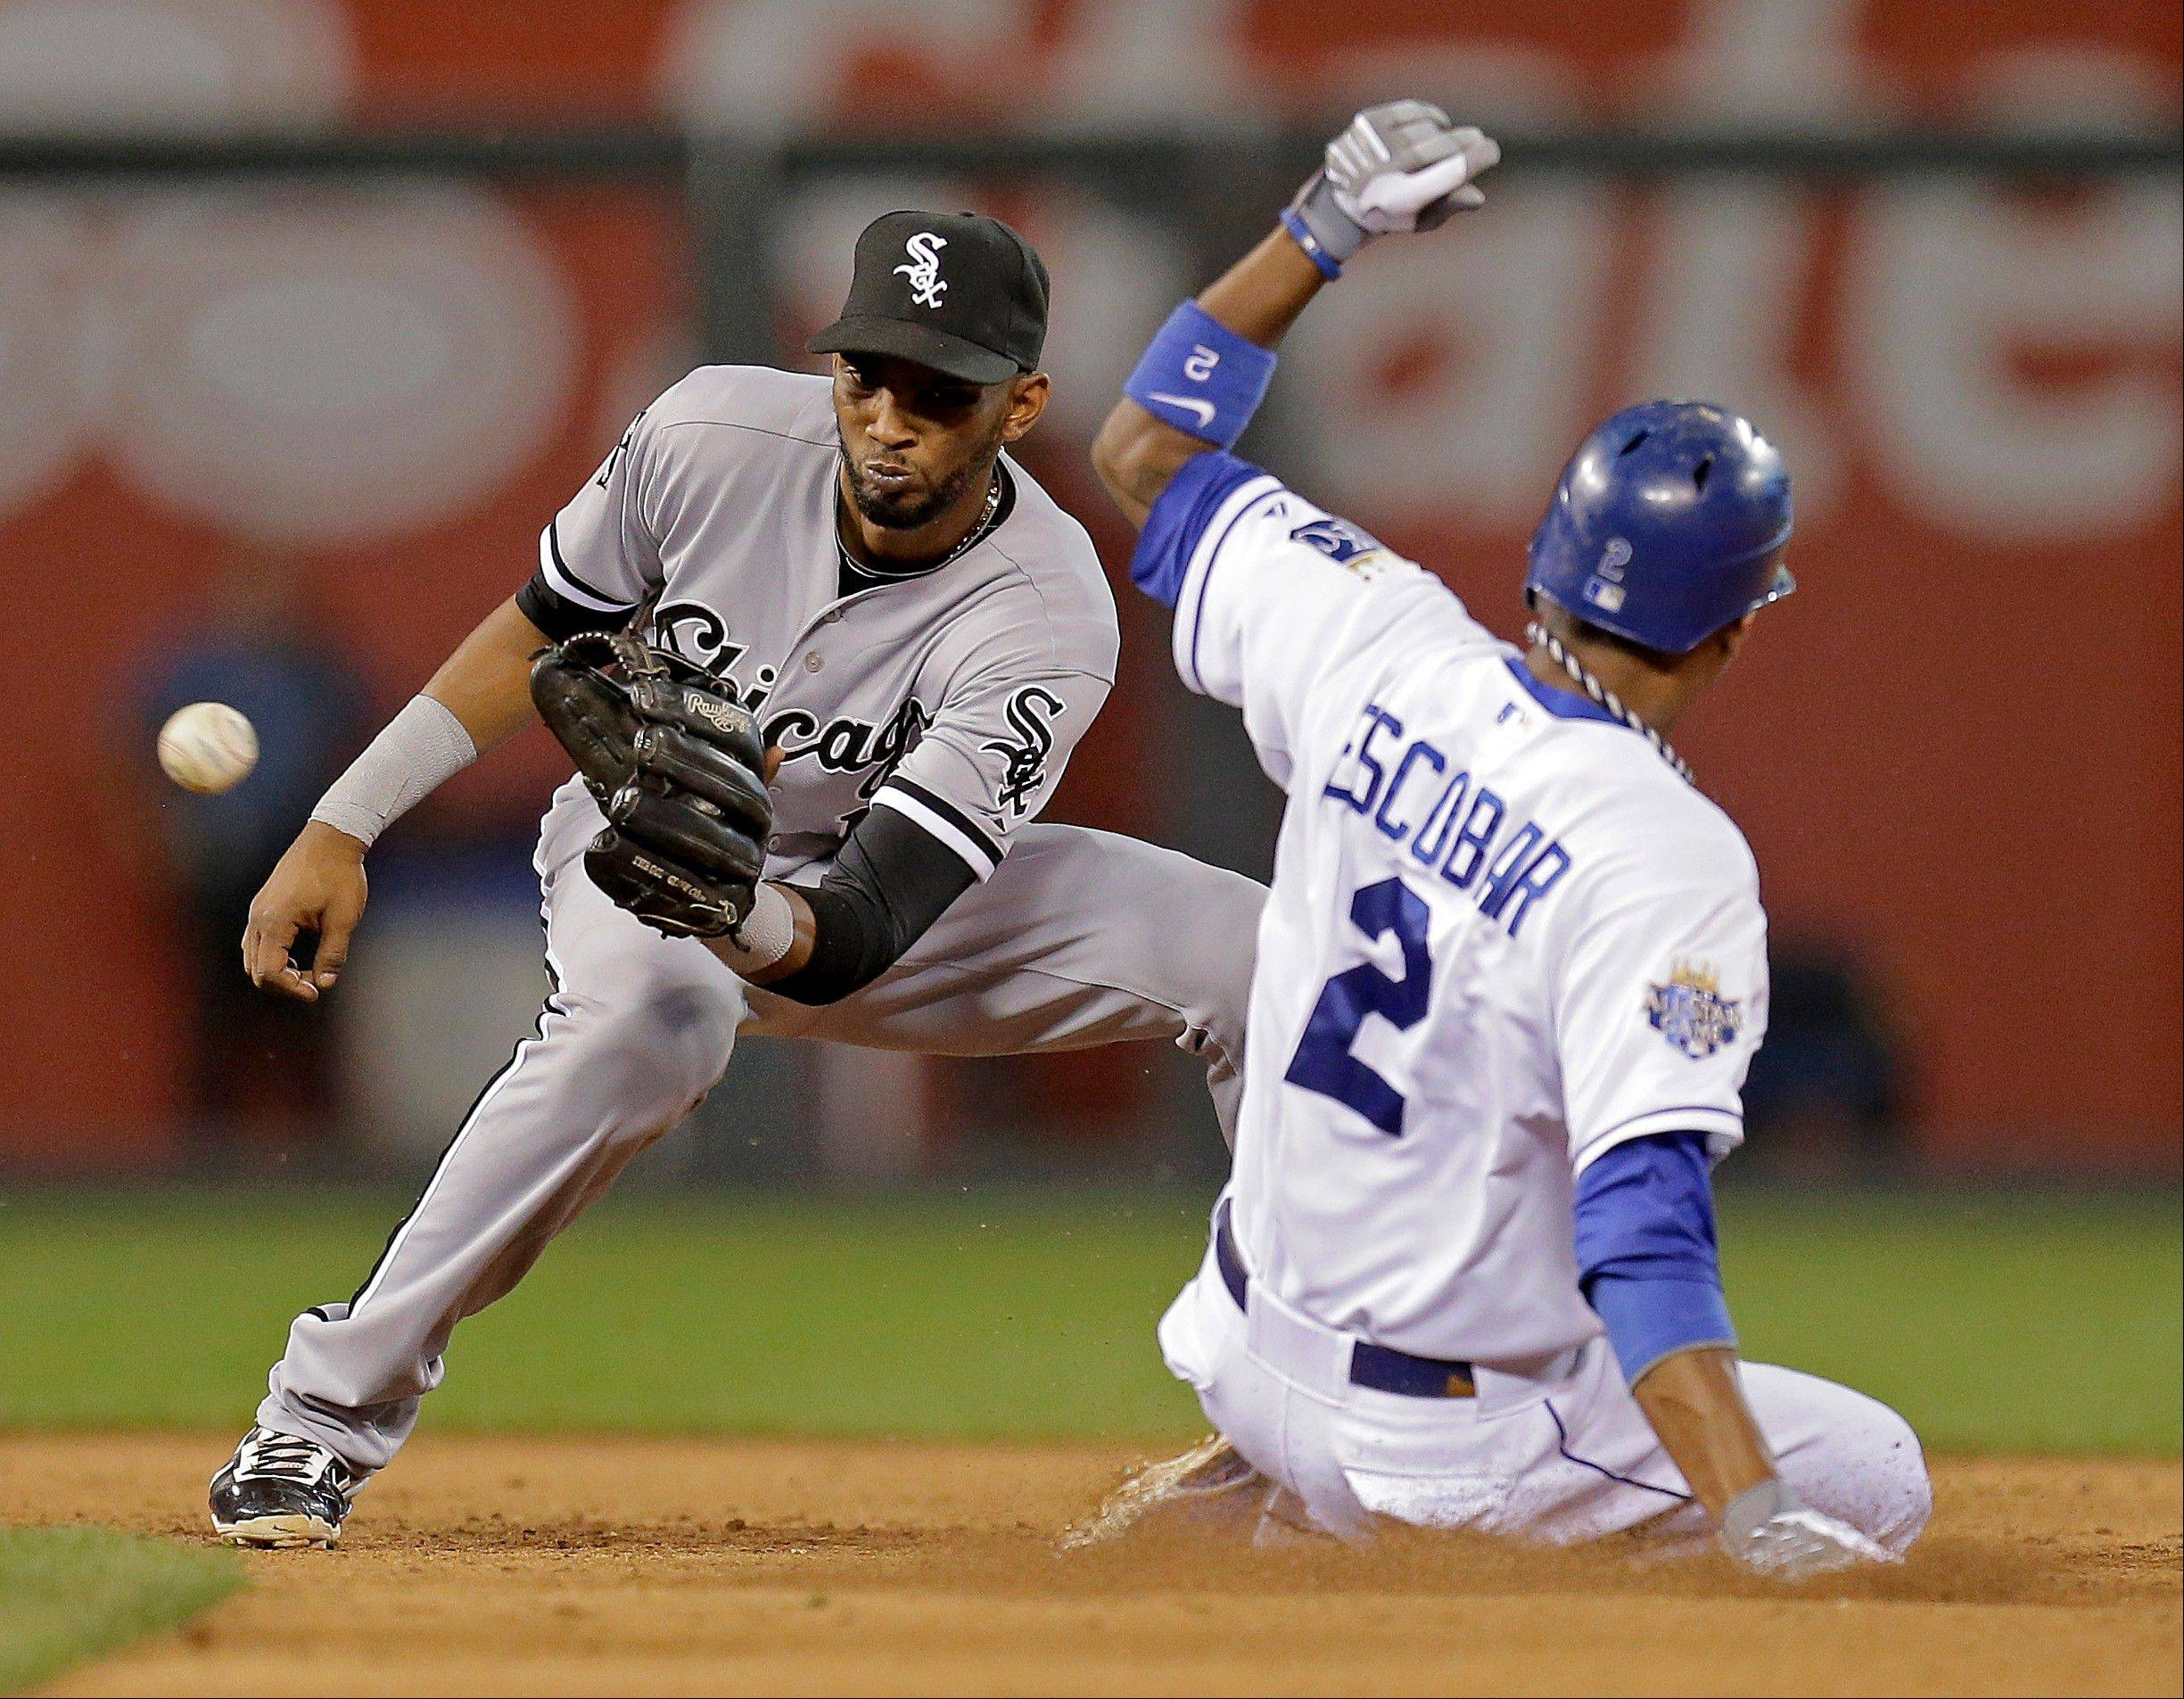 White Sox stumble against Royals again in 3-0 loss